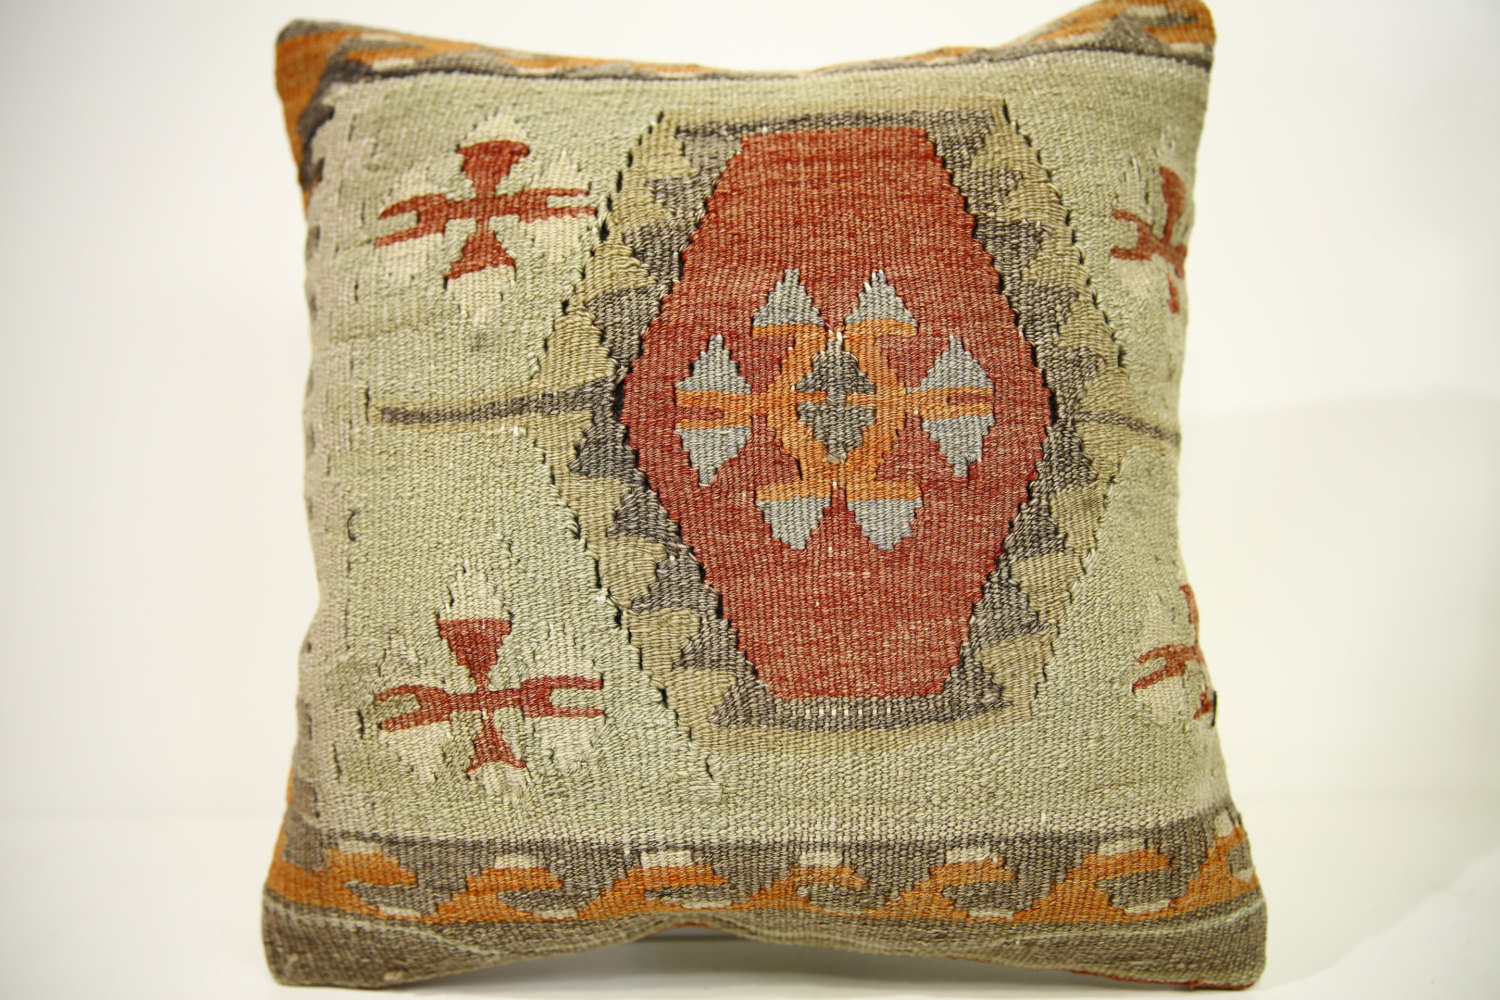 Kilim Pillows | 15x15 | Kelim pillows | 1395 | Turkish pillows , Kilim cushion